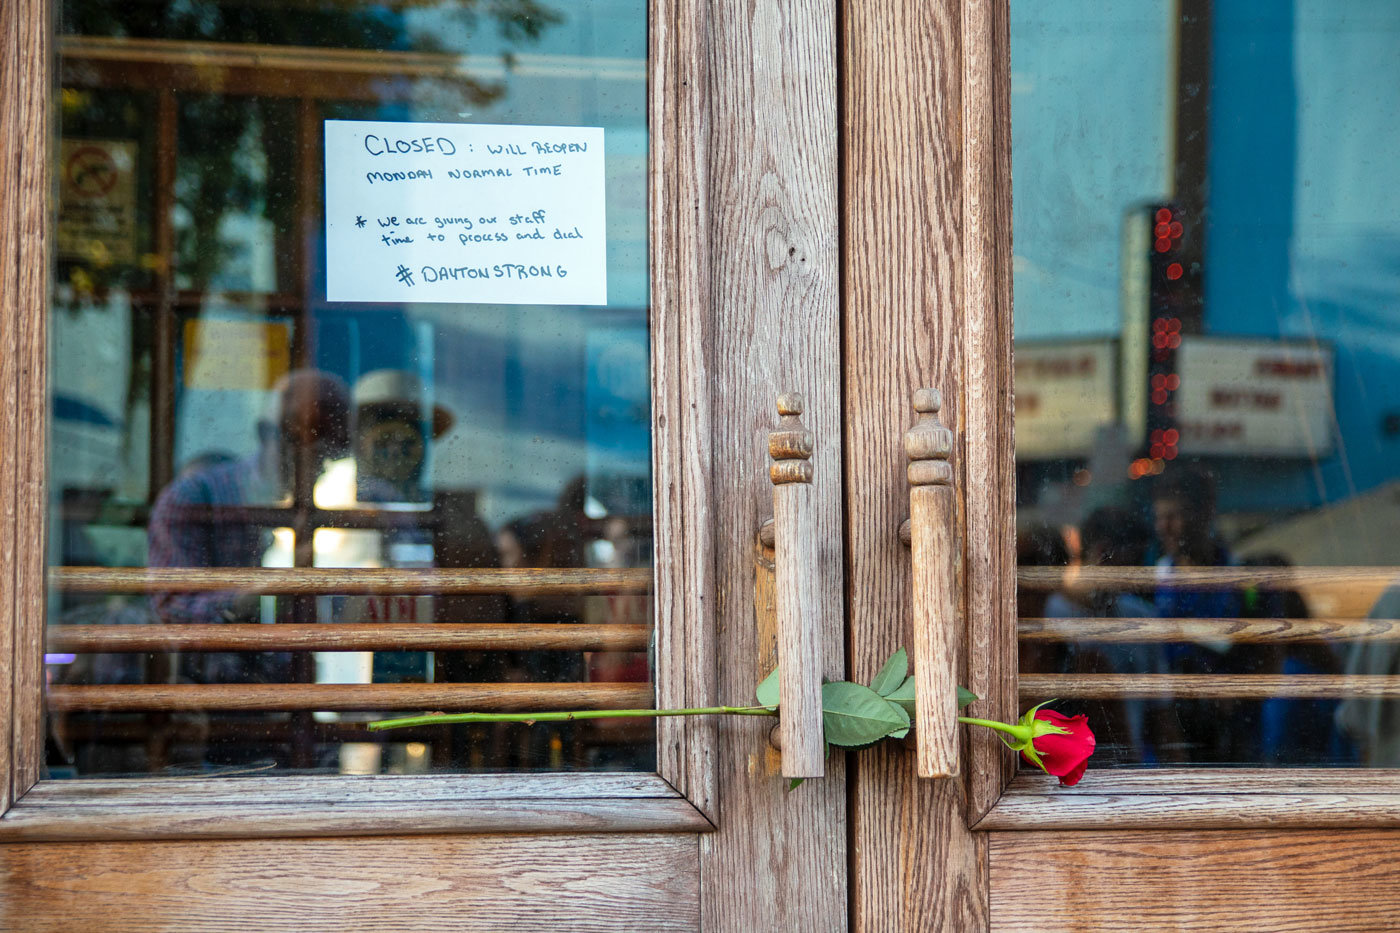 Ned Peppers Bar in Dayton, Ohio, was closed on Aug. 4, the day after nine people were killed near the bar's entrance.